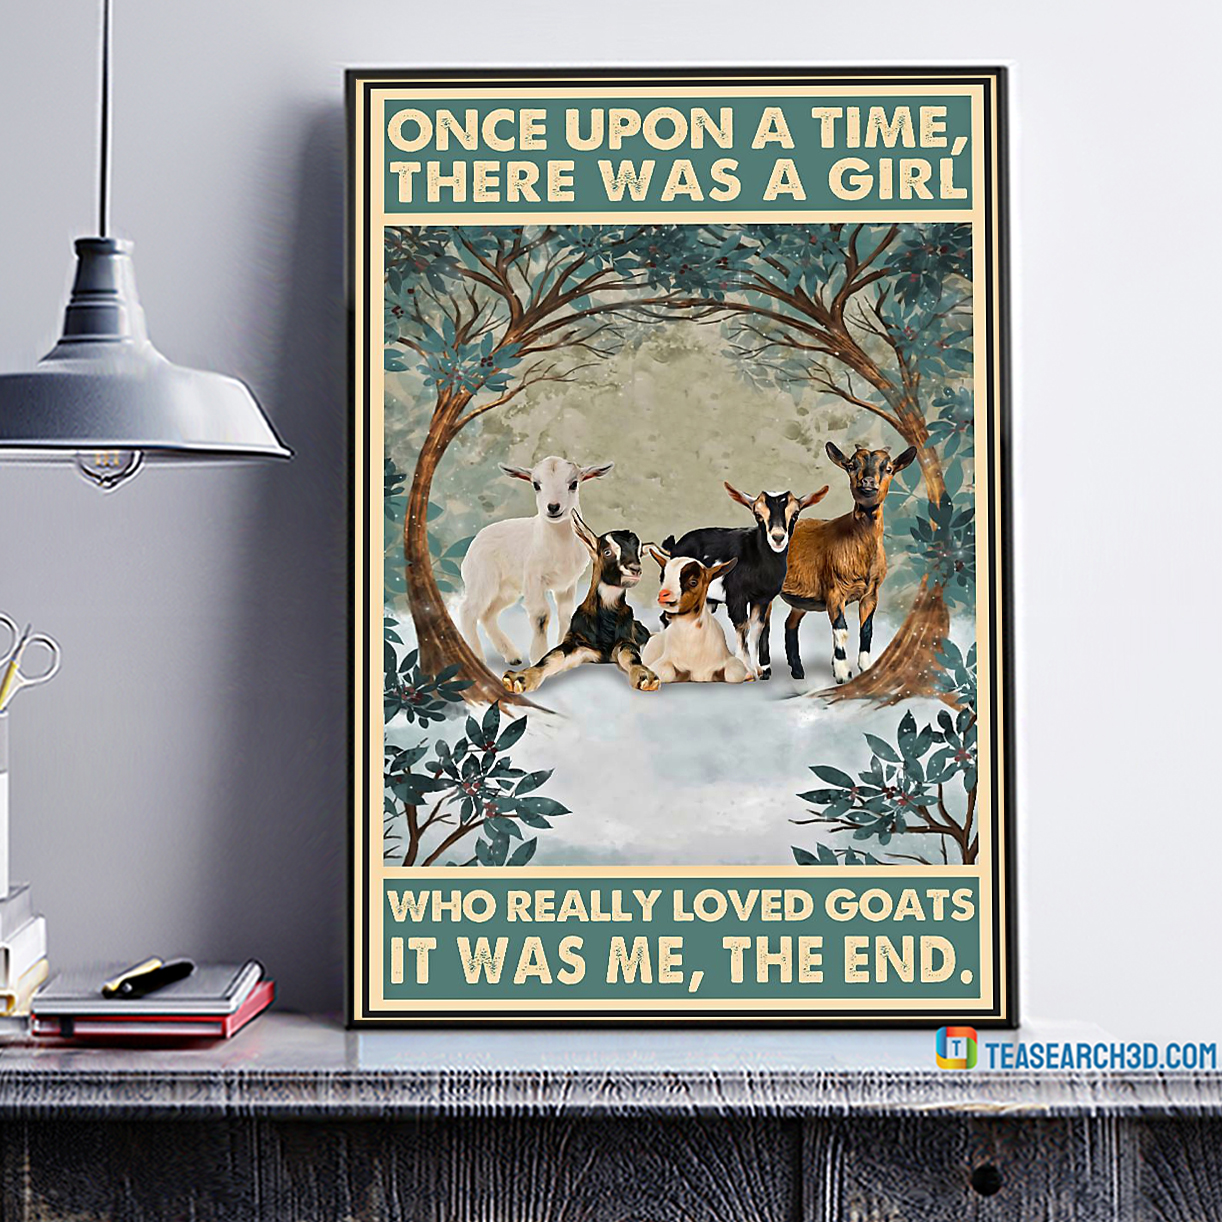 There was a girl who really loved goats it was me the end poster A1